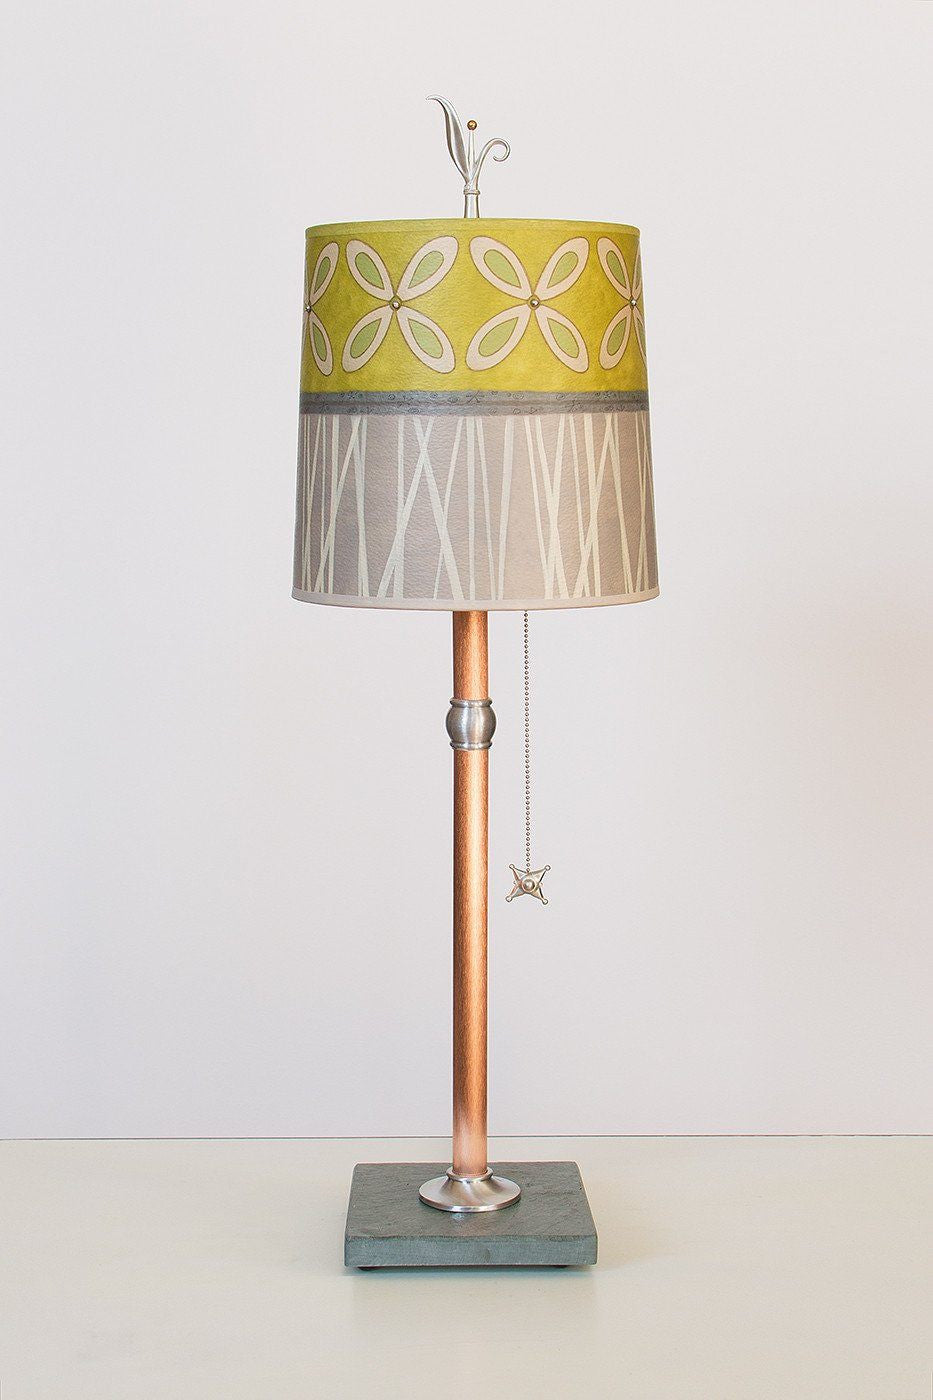 Copper Table Lamp with Medium Drum Shade in Kiwi